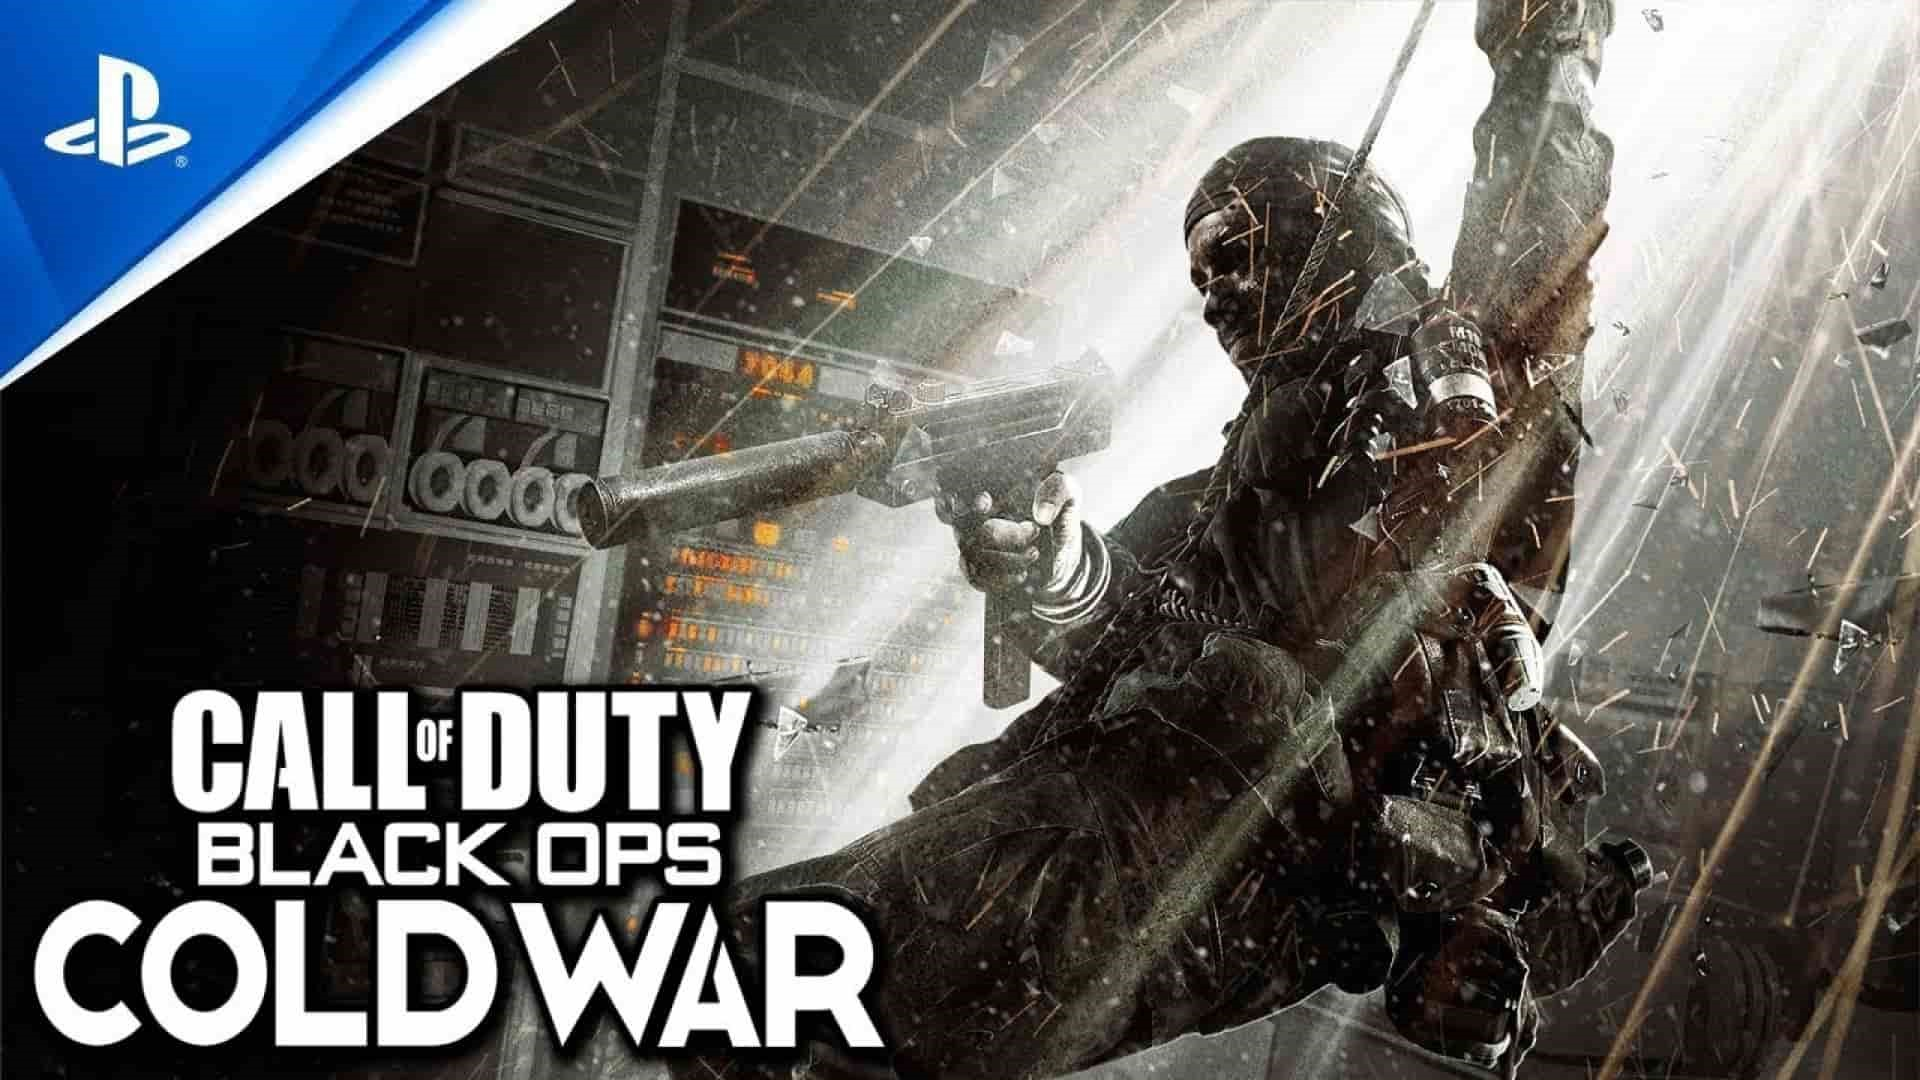 بازی Call of Duty Black Ops: War Cold